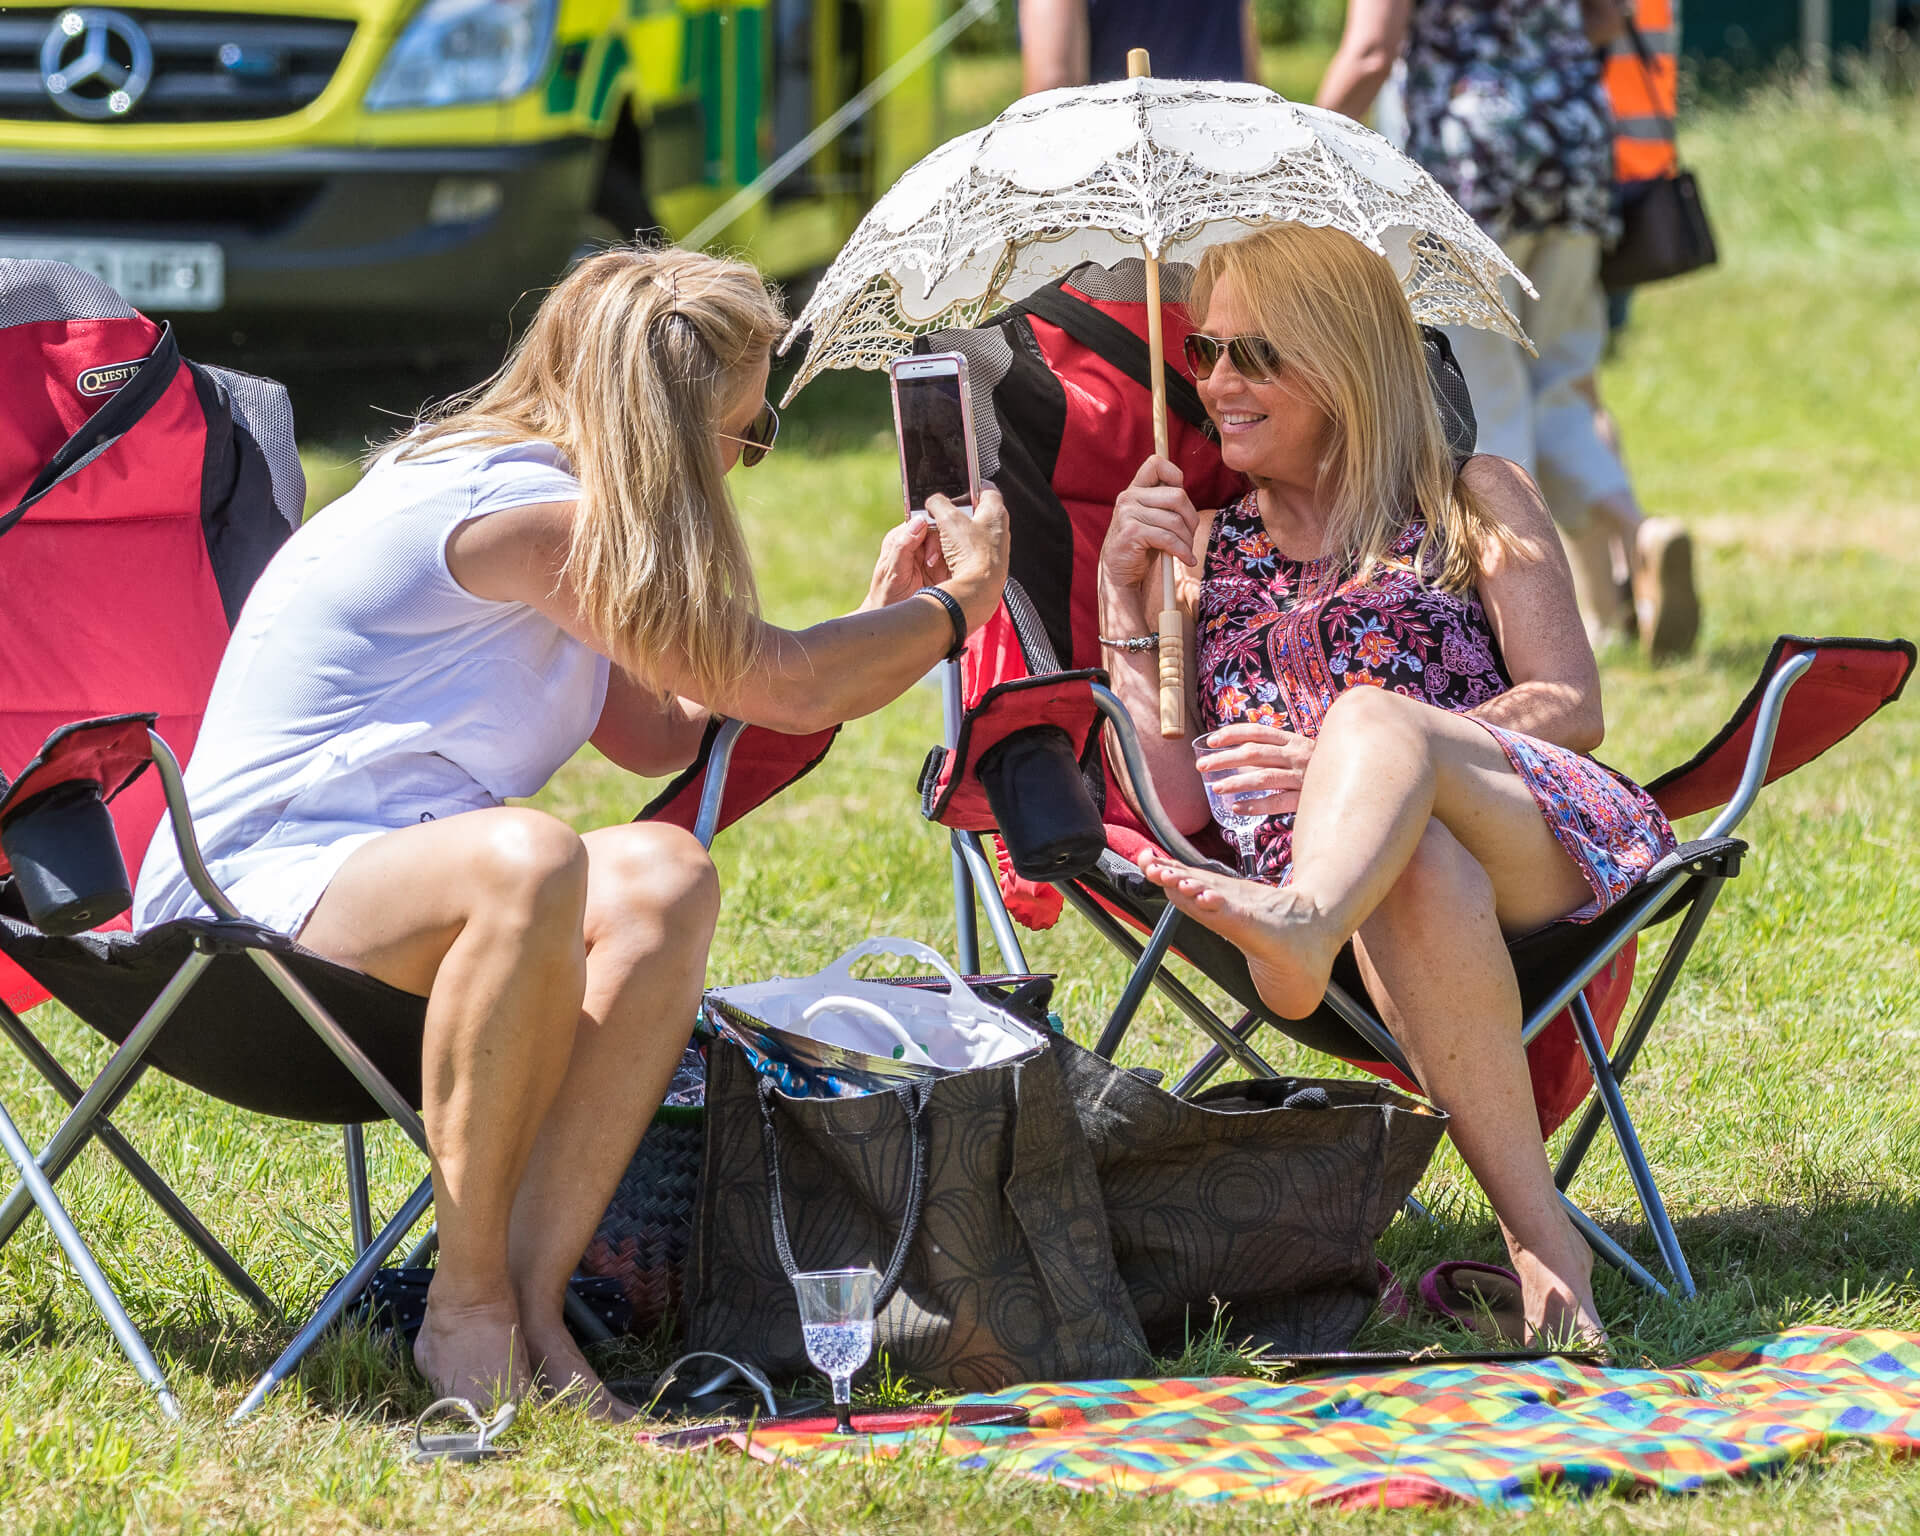 A colour image of two long blonde haired ladies at Mantonfest, Marlborough, Wilts, sat together on collapsable chairs in the sun, waiting for the start of the day. One, in a flowery dress and sunglasses, and holding a glass of something cold holds a parasol over herself with her right hand as her friend, dressed in a white top and white shorts, takes her photo with a mobile phone. Both are bare foot.